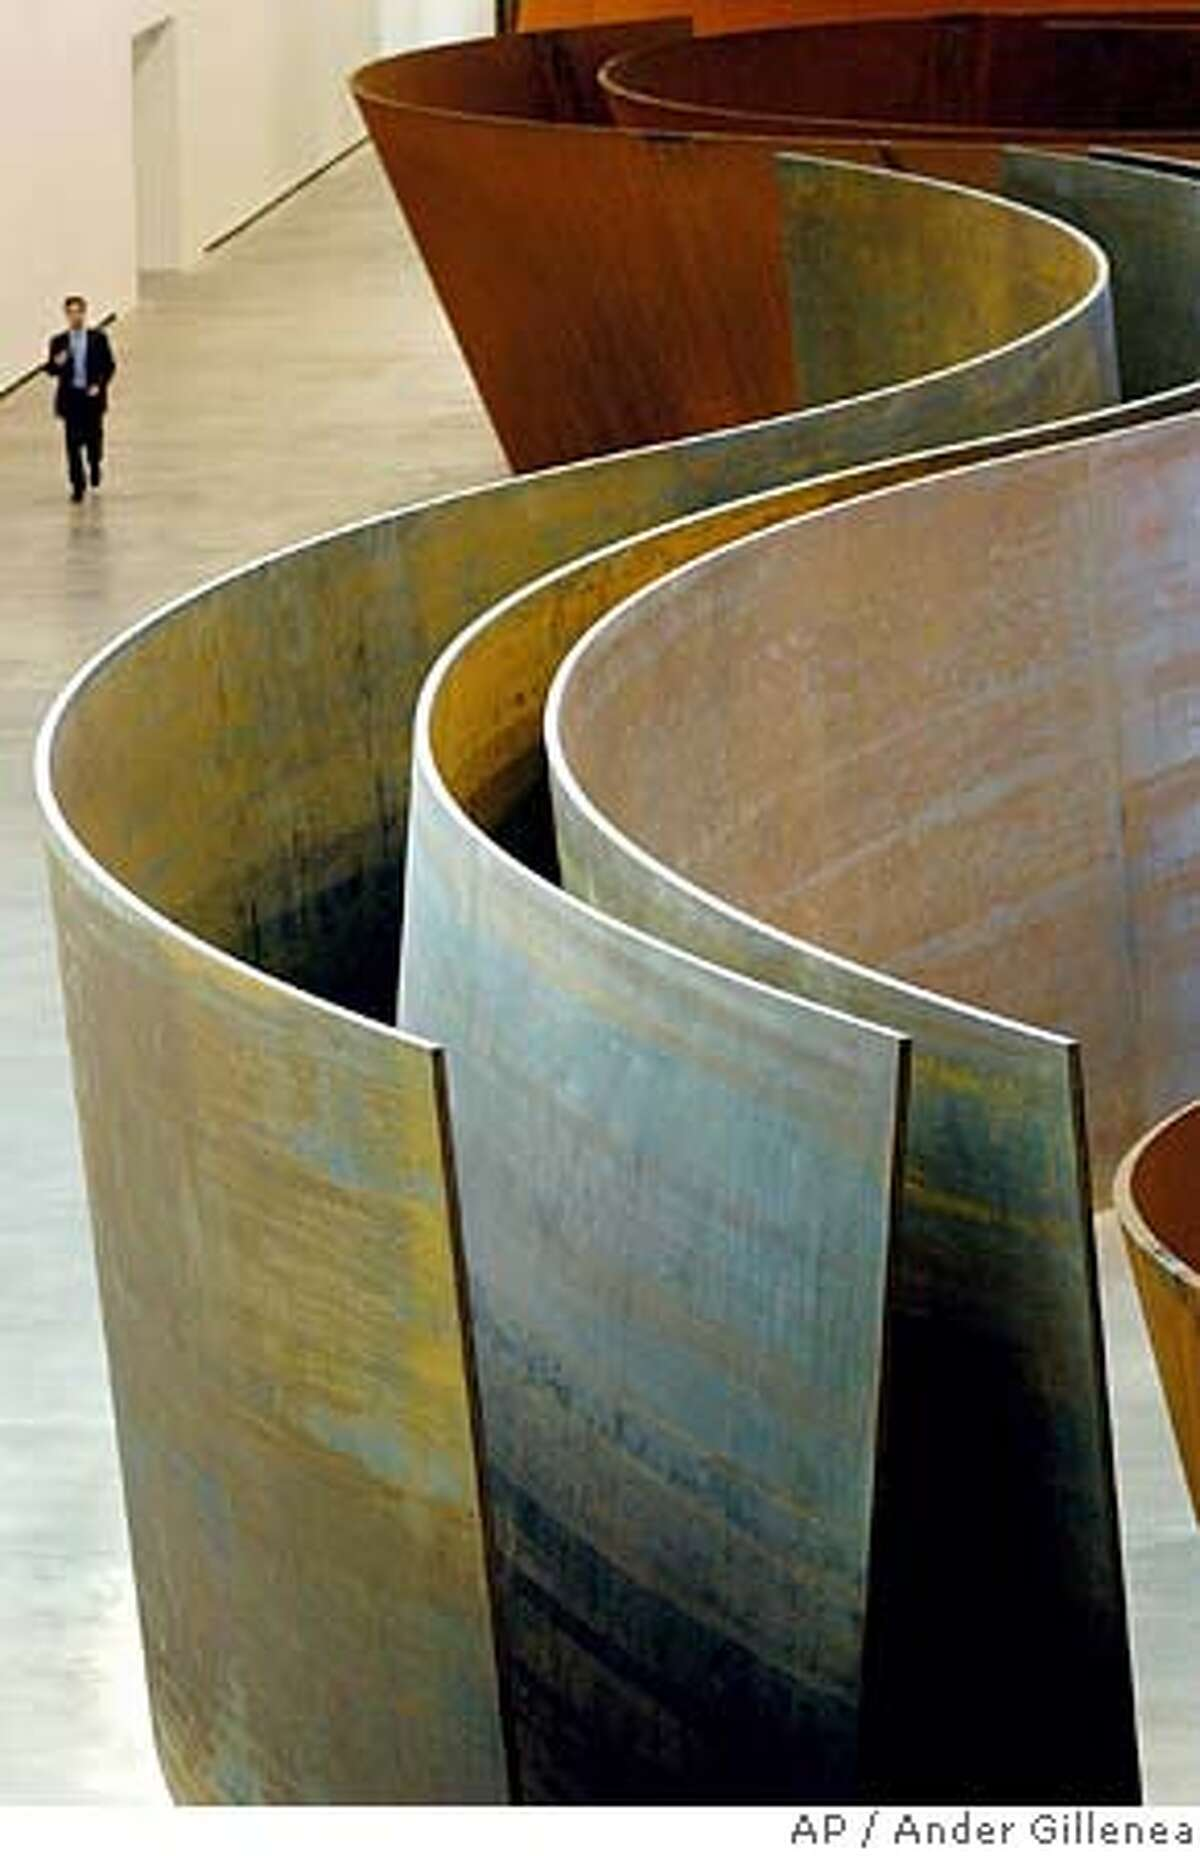 A person walks past a steel sculpture made by U.S. artist Richard Serra at the Guggenheim museum in Bilbao, Spain, Tuesday, June 7, 2005. The exhibition titled 'The matter of Time' will be opened to the public on Wednesday. (AP Photo/Ander Gillenea) EFE OUT